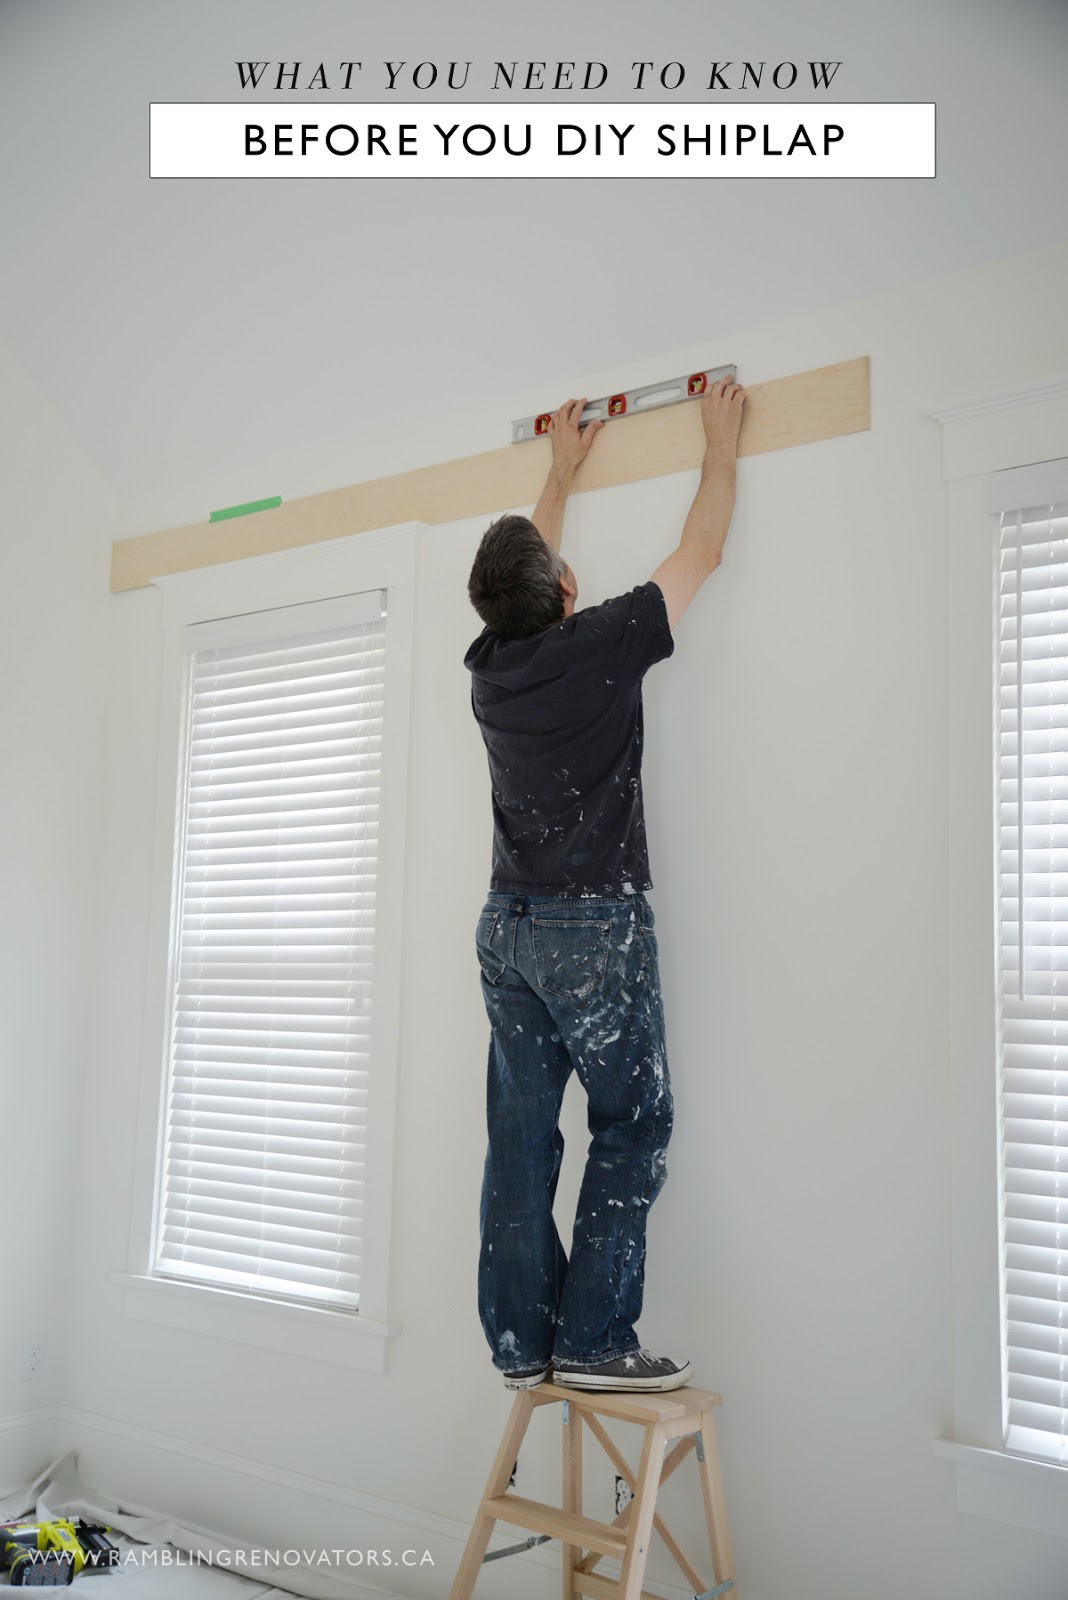 what you need to know before you diy shiplap | Ramblingrenovators.ca